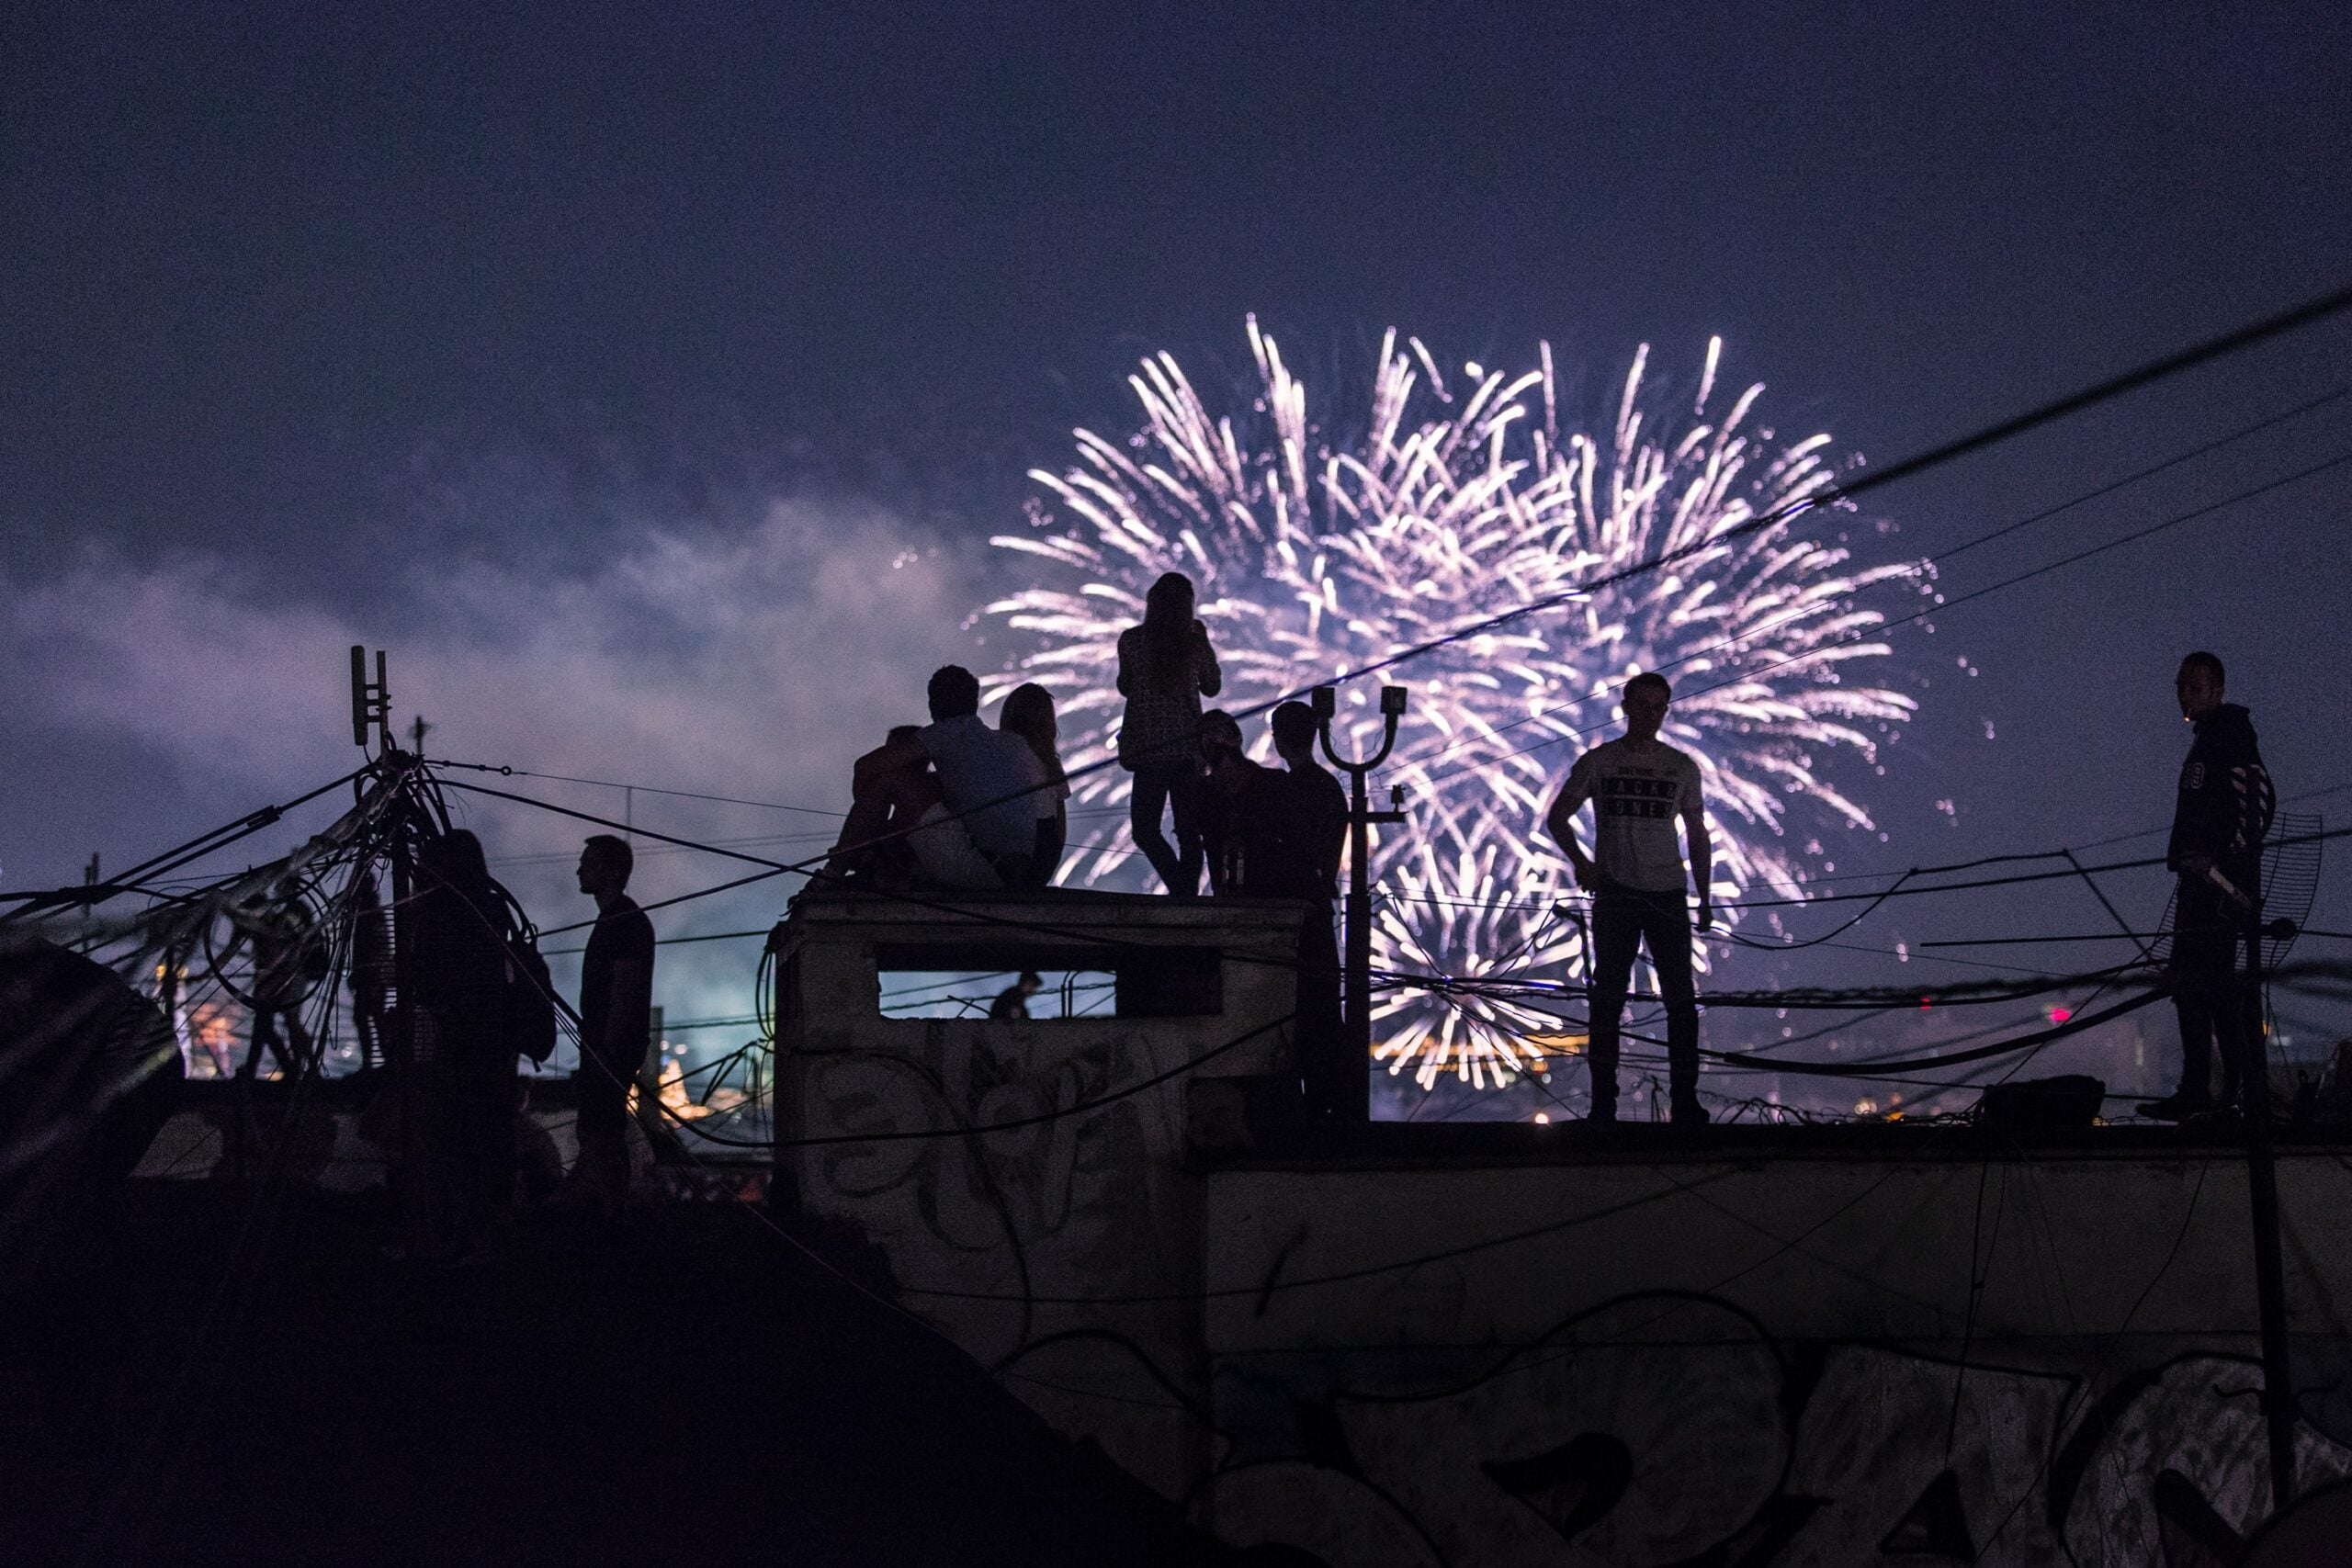 A group watching fireworks from a roof